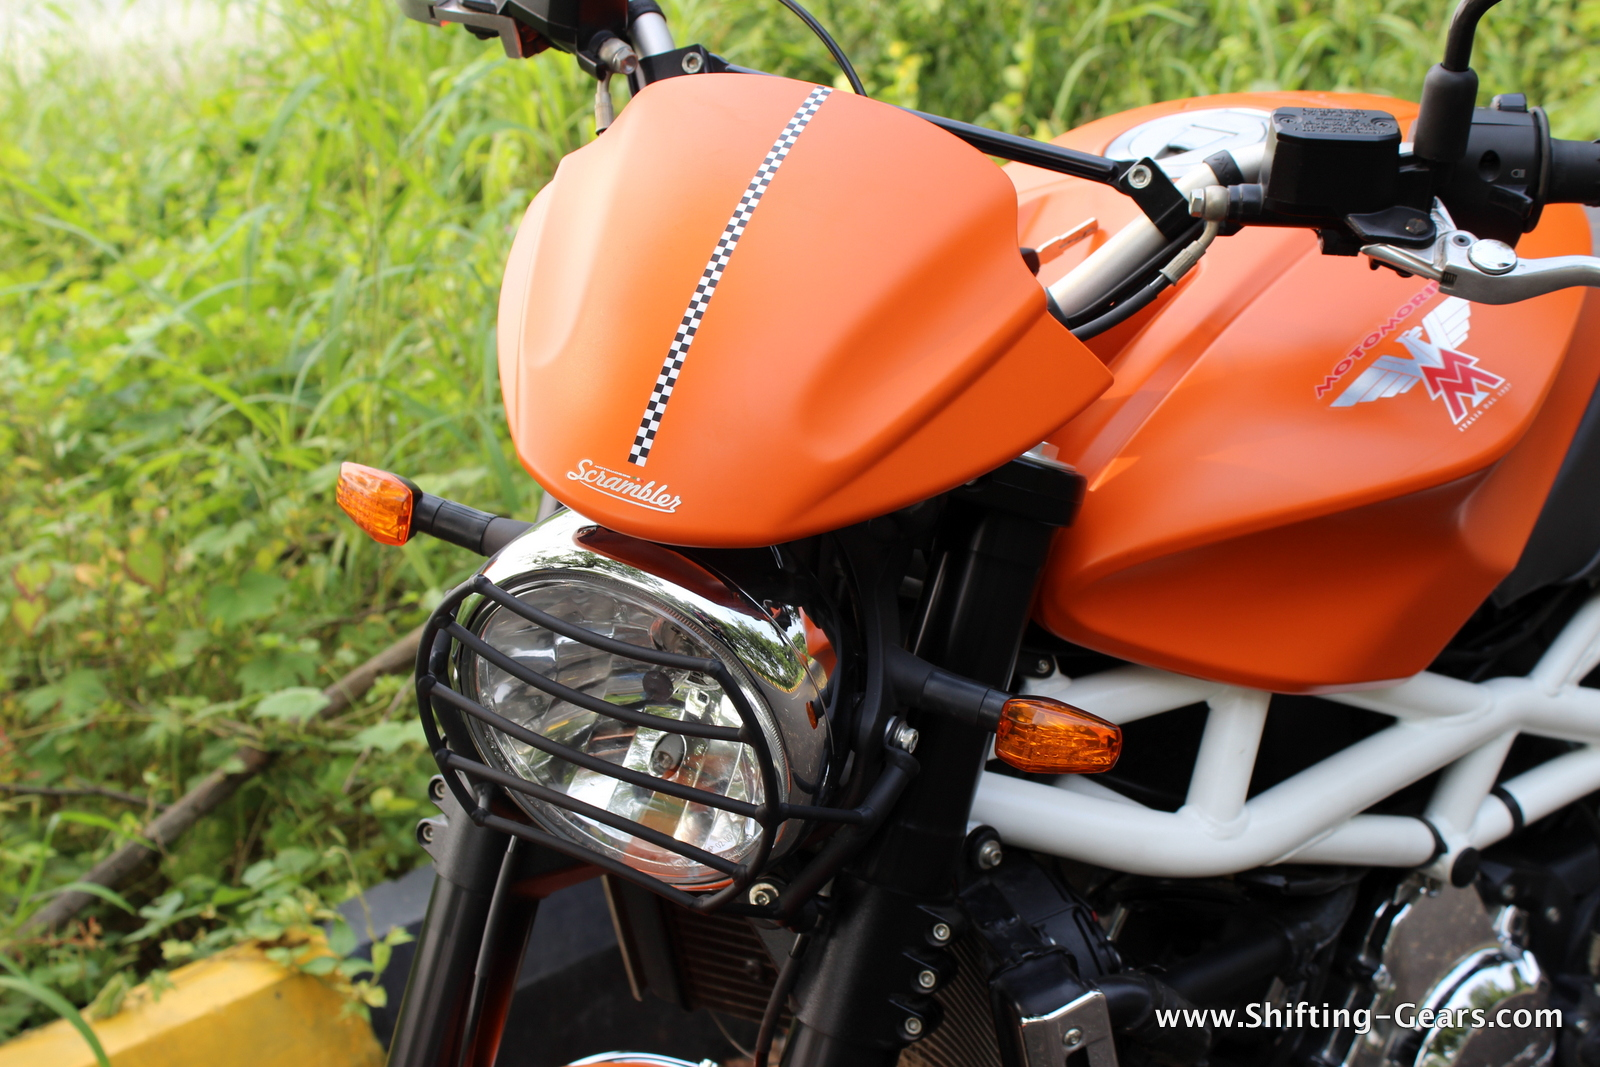 Round headlamp gets a metal guard to protect the lens and a small wind deflector on top with a chequered flag decal